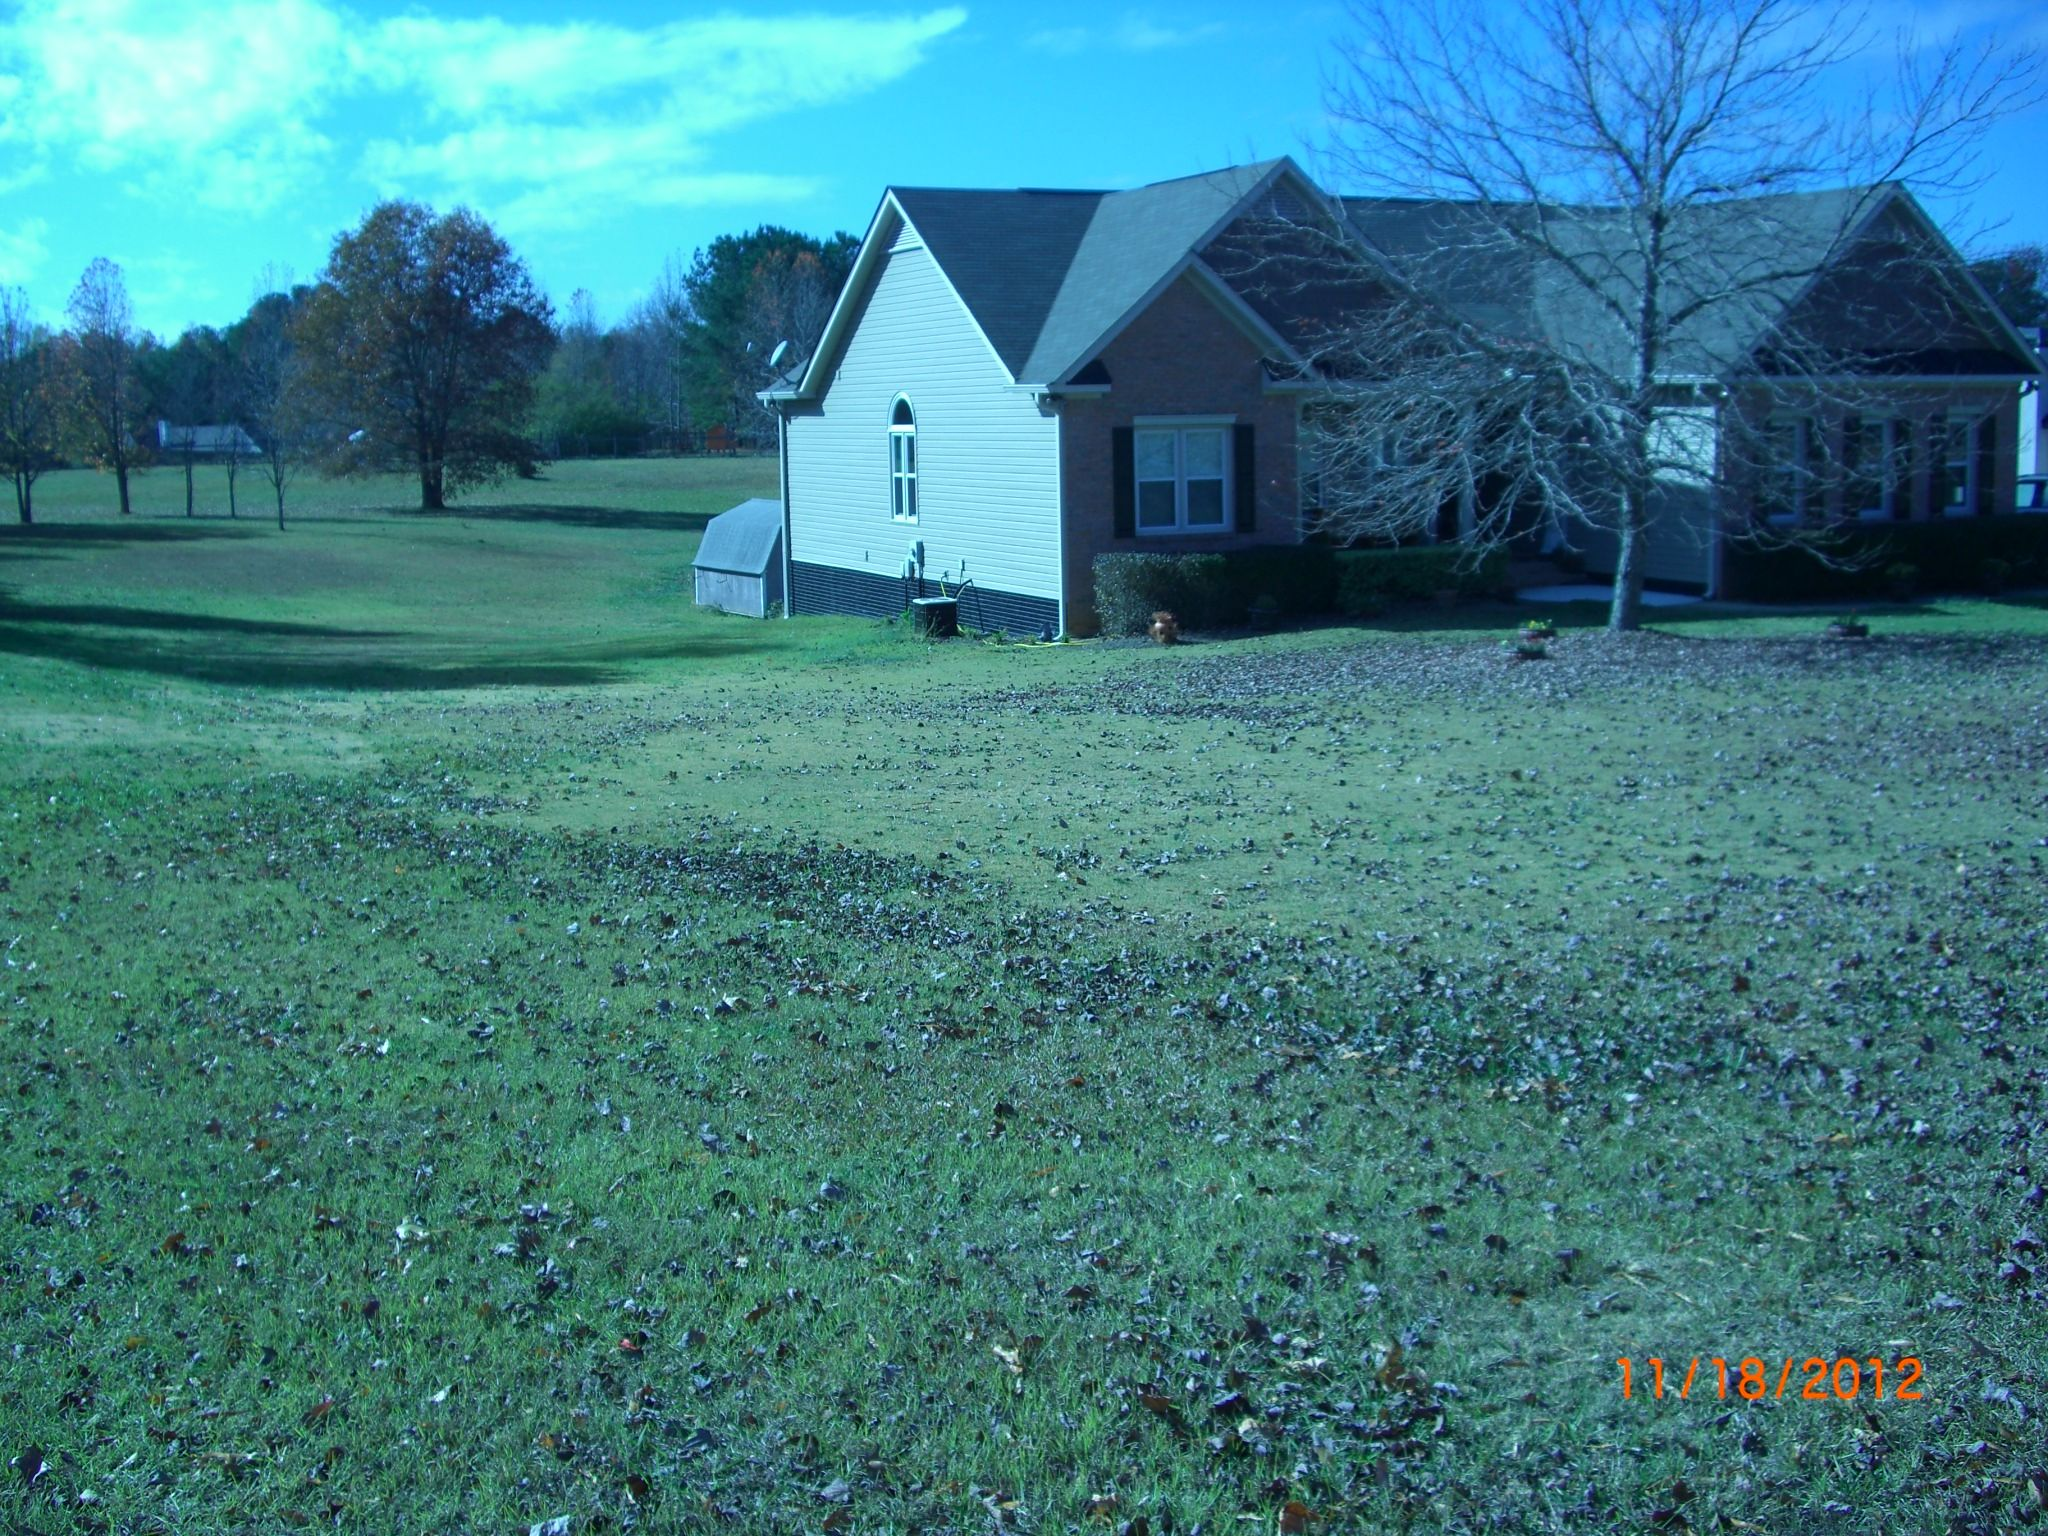 This is the opposite side of the front yard showing the side yard and into the back yard. This view shows how the yard slopes down from the street to behind the house and the back yard slopes towards the house.